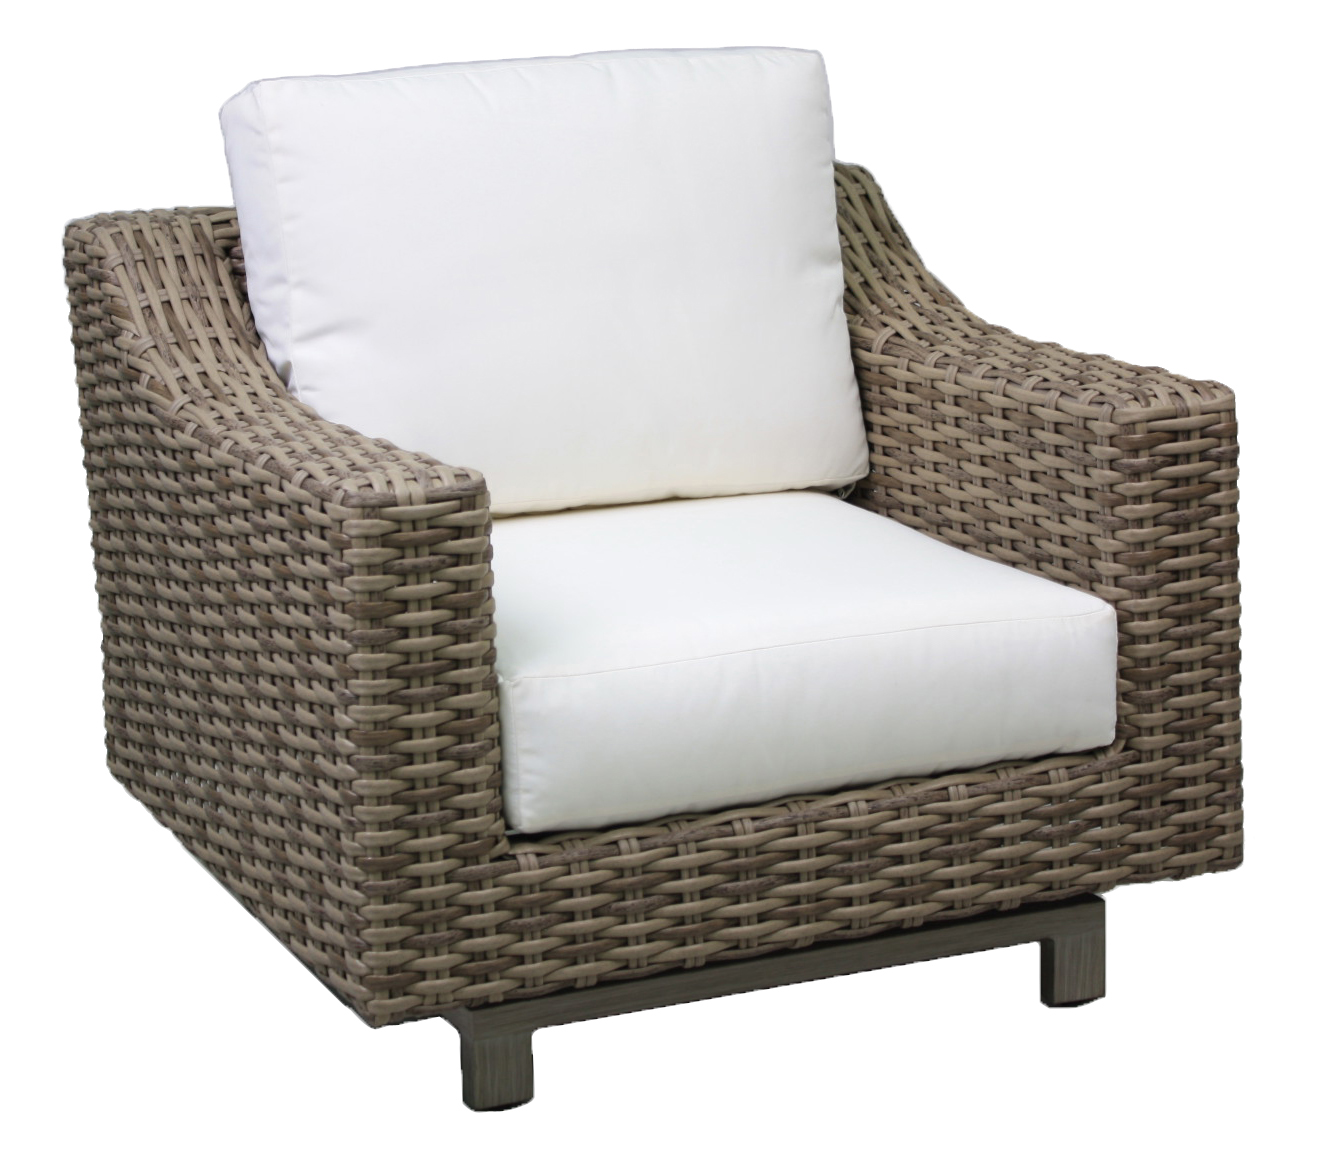 "957127 Sorrento DS Spring Chair   37.6"" x 36.8"" x 30.5"""